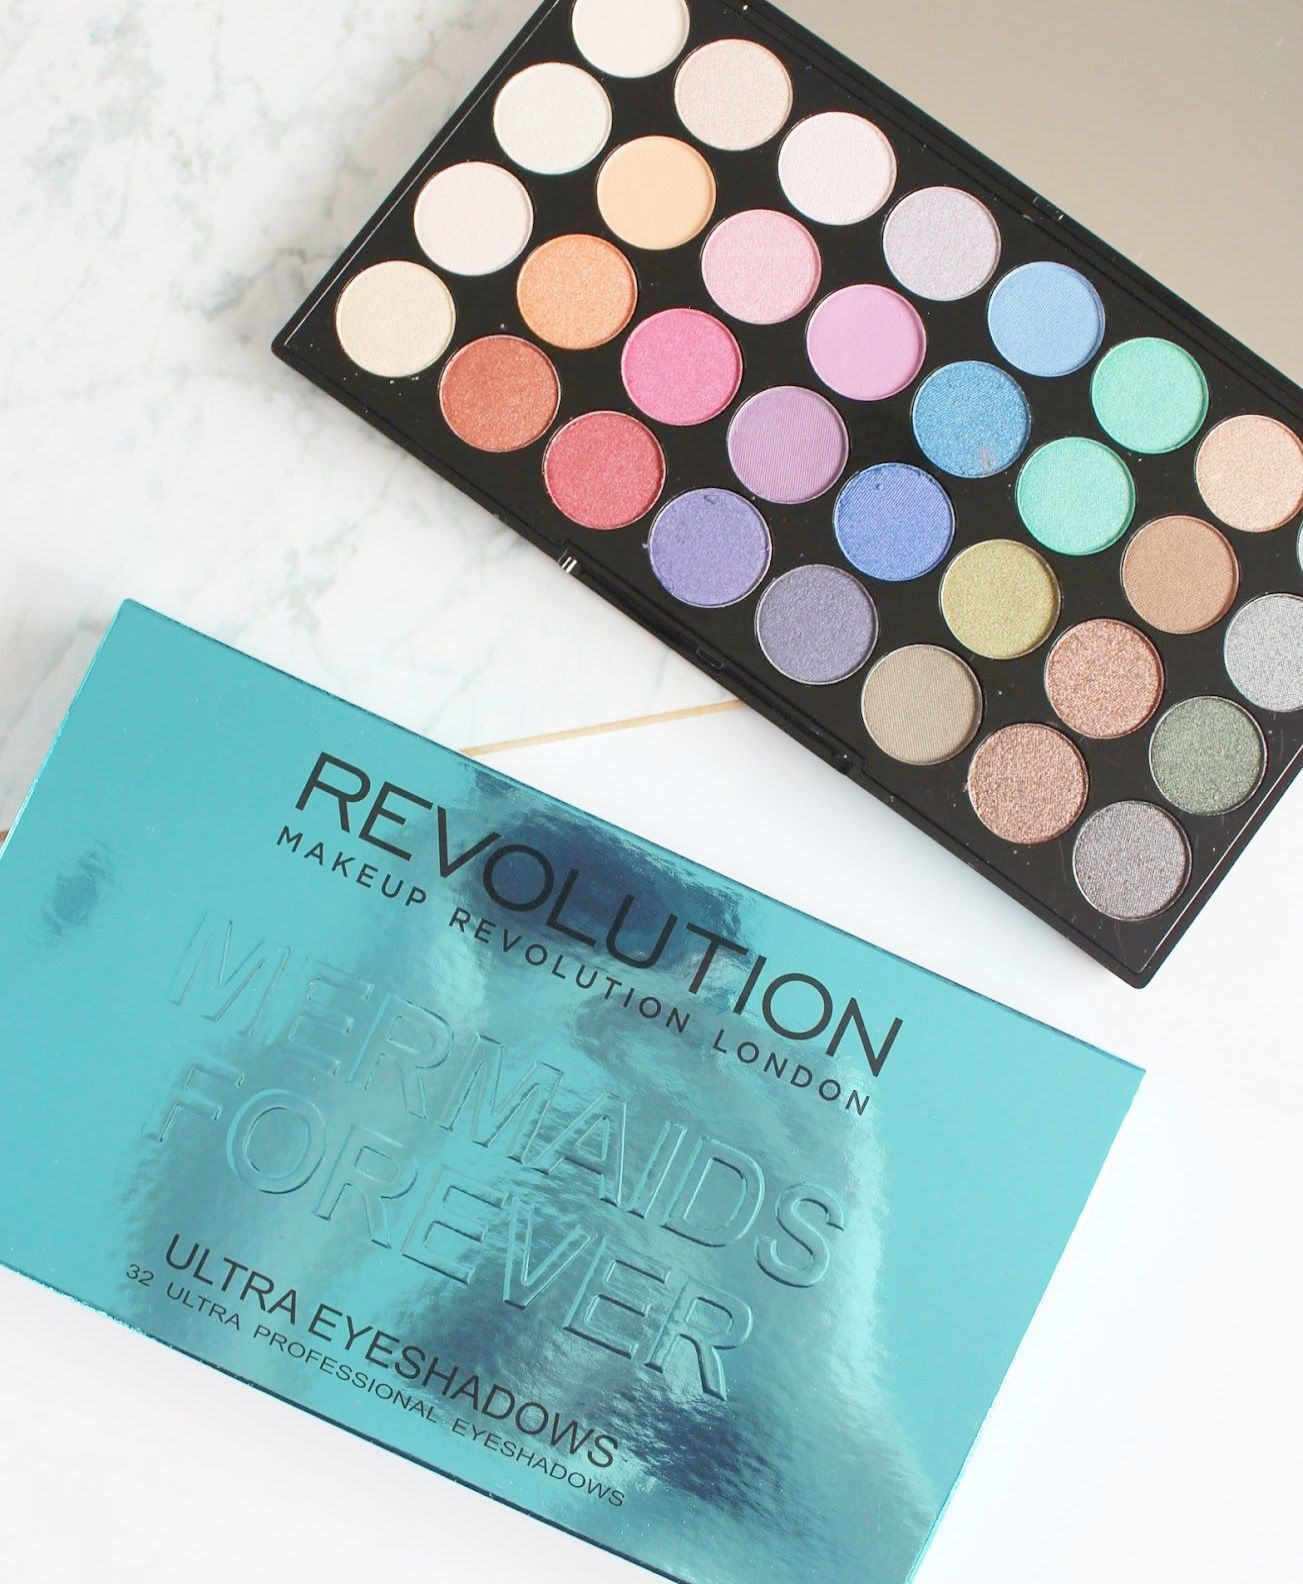 Makeup Revolution - Mermaids Forever 32 Ultra Professional Eyeshadow Palette